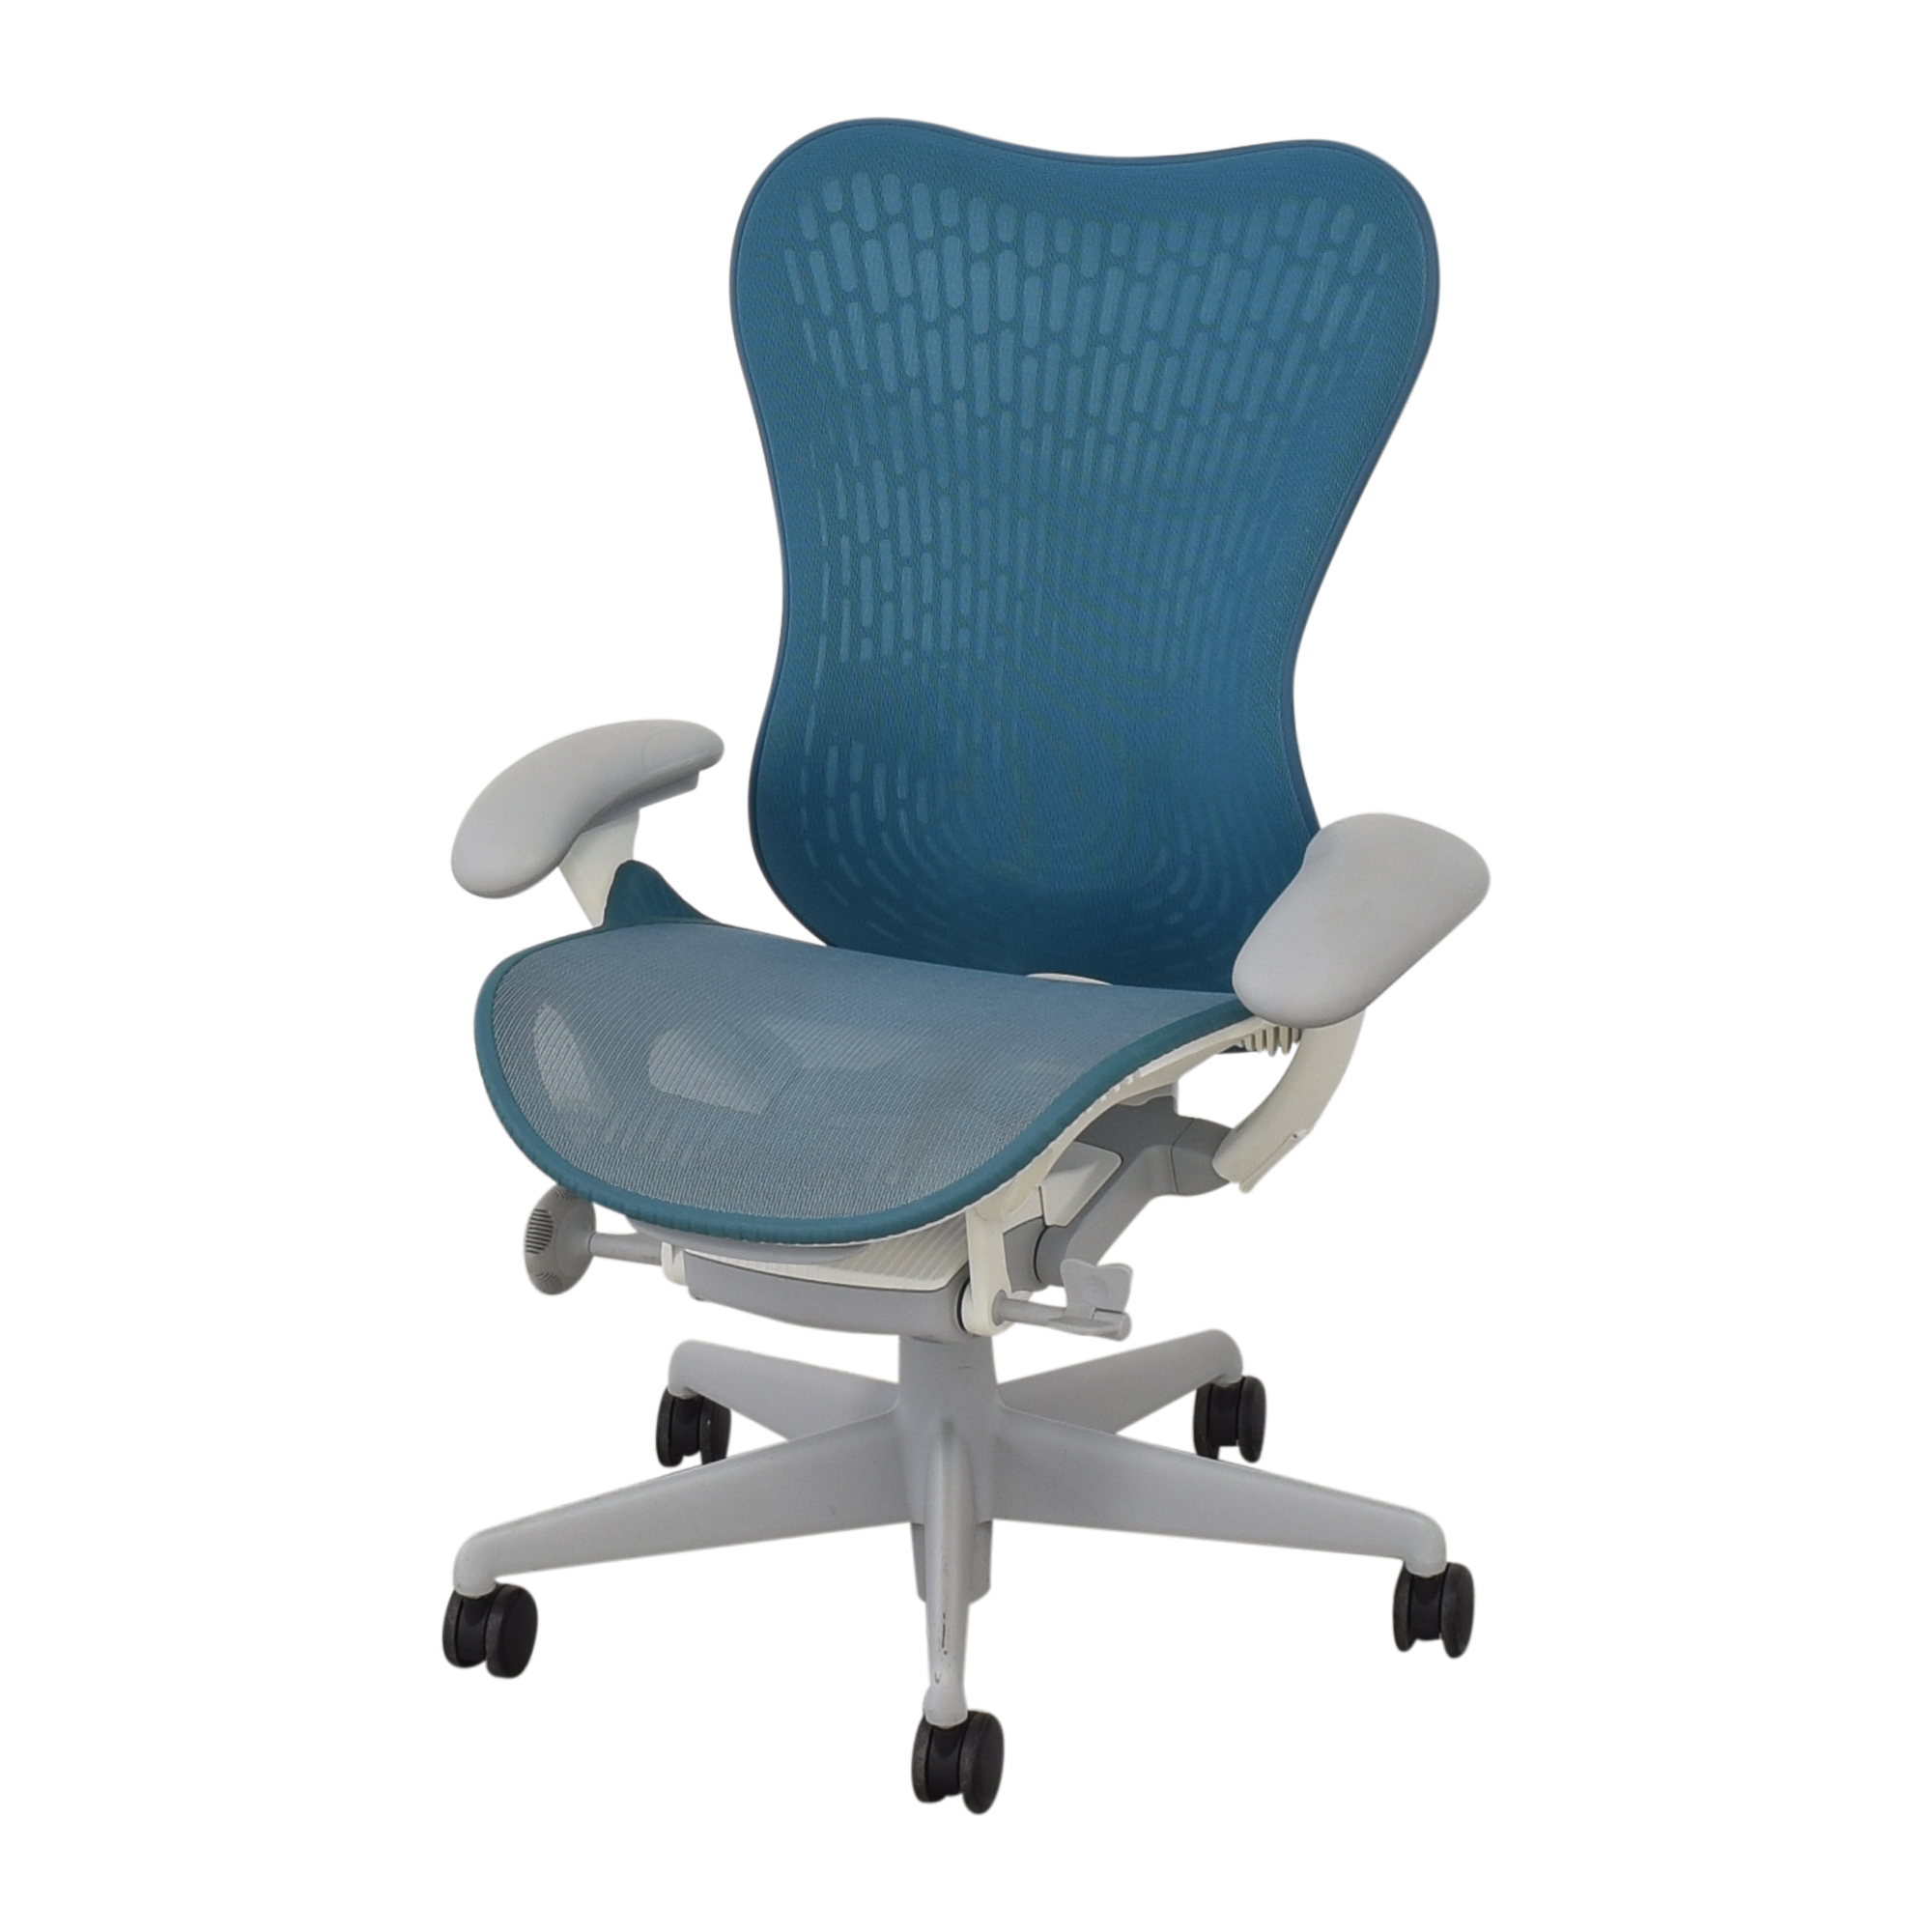 Herman Miller Herman Miller Mirra Chair dimensions